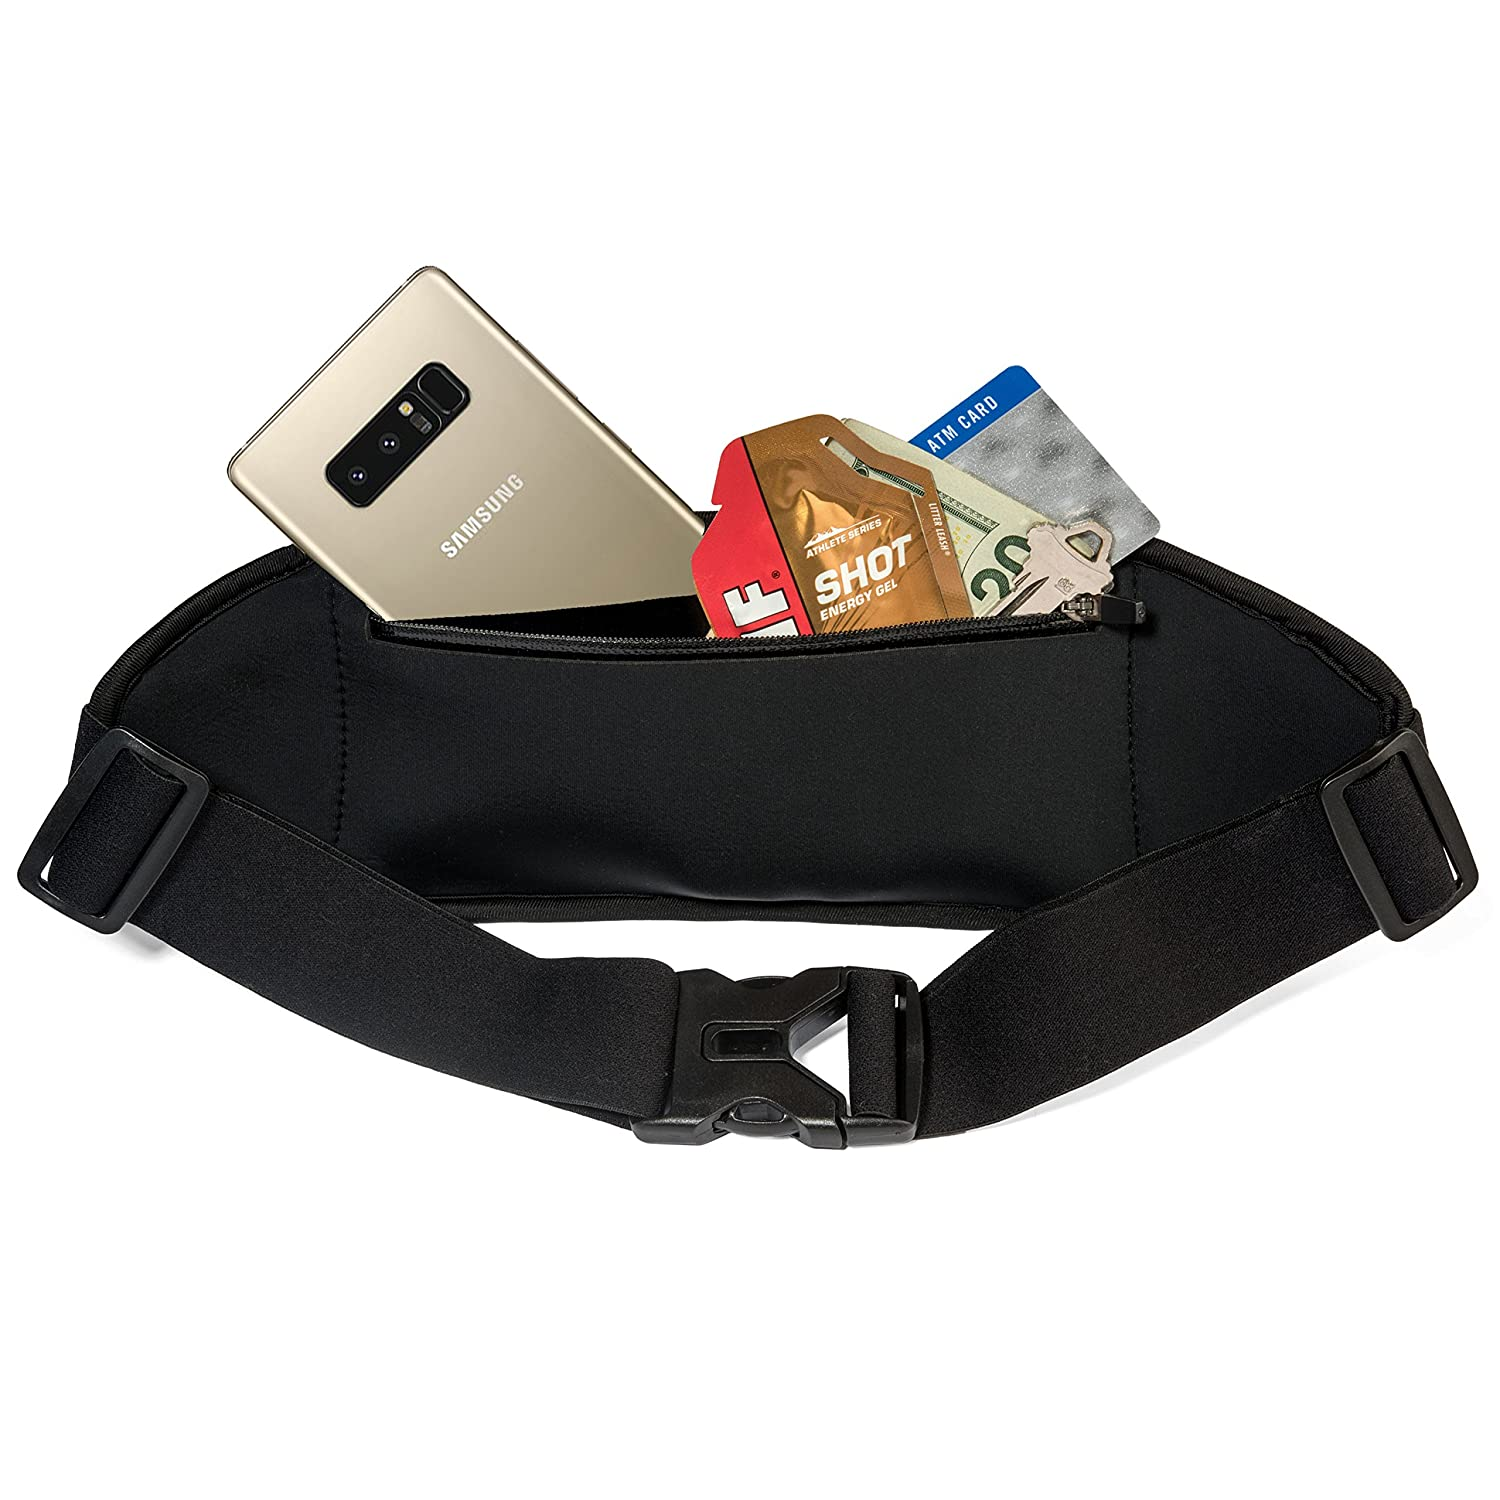 X Note 9 Pixel 3 XL 8 Plus Note 8 S8 Plus iPhone 8 Galaxy S10 Plus 2 XL S9 Plus S8 XR S10 S9 S10e Xs Max Sporteer Zephyr Slim Running Belt for iPhone Xs and MANY More Phones /& Cases